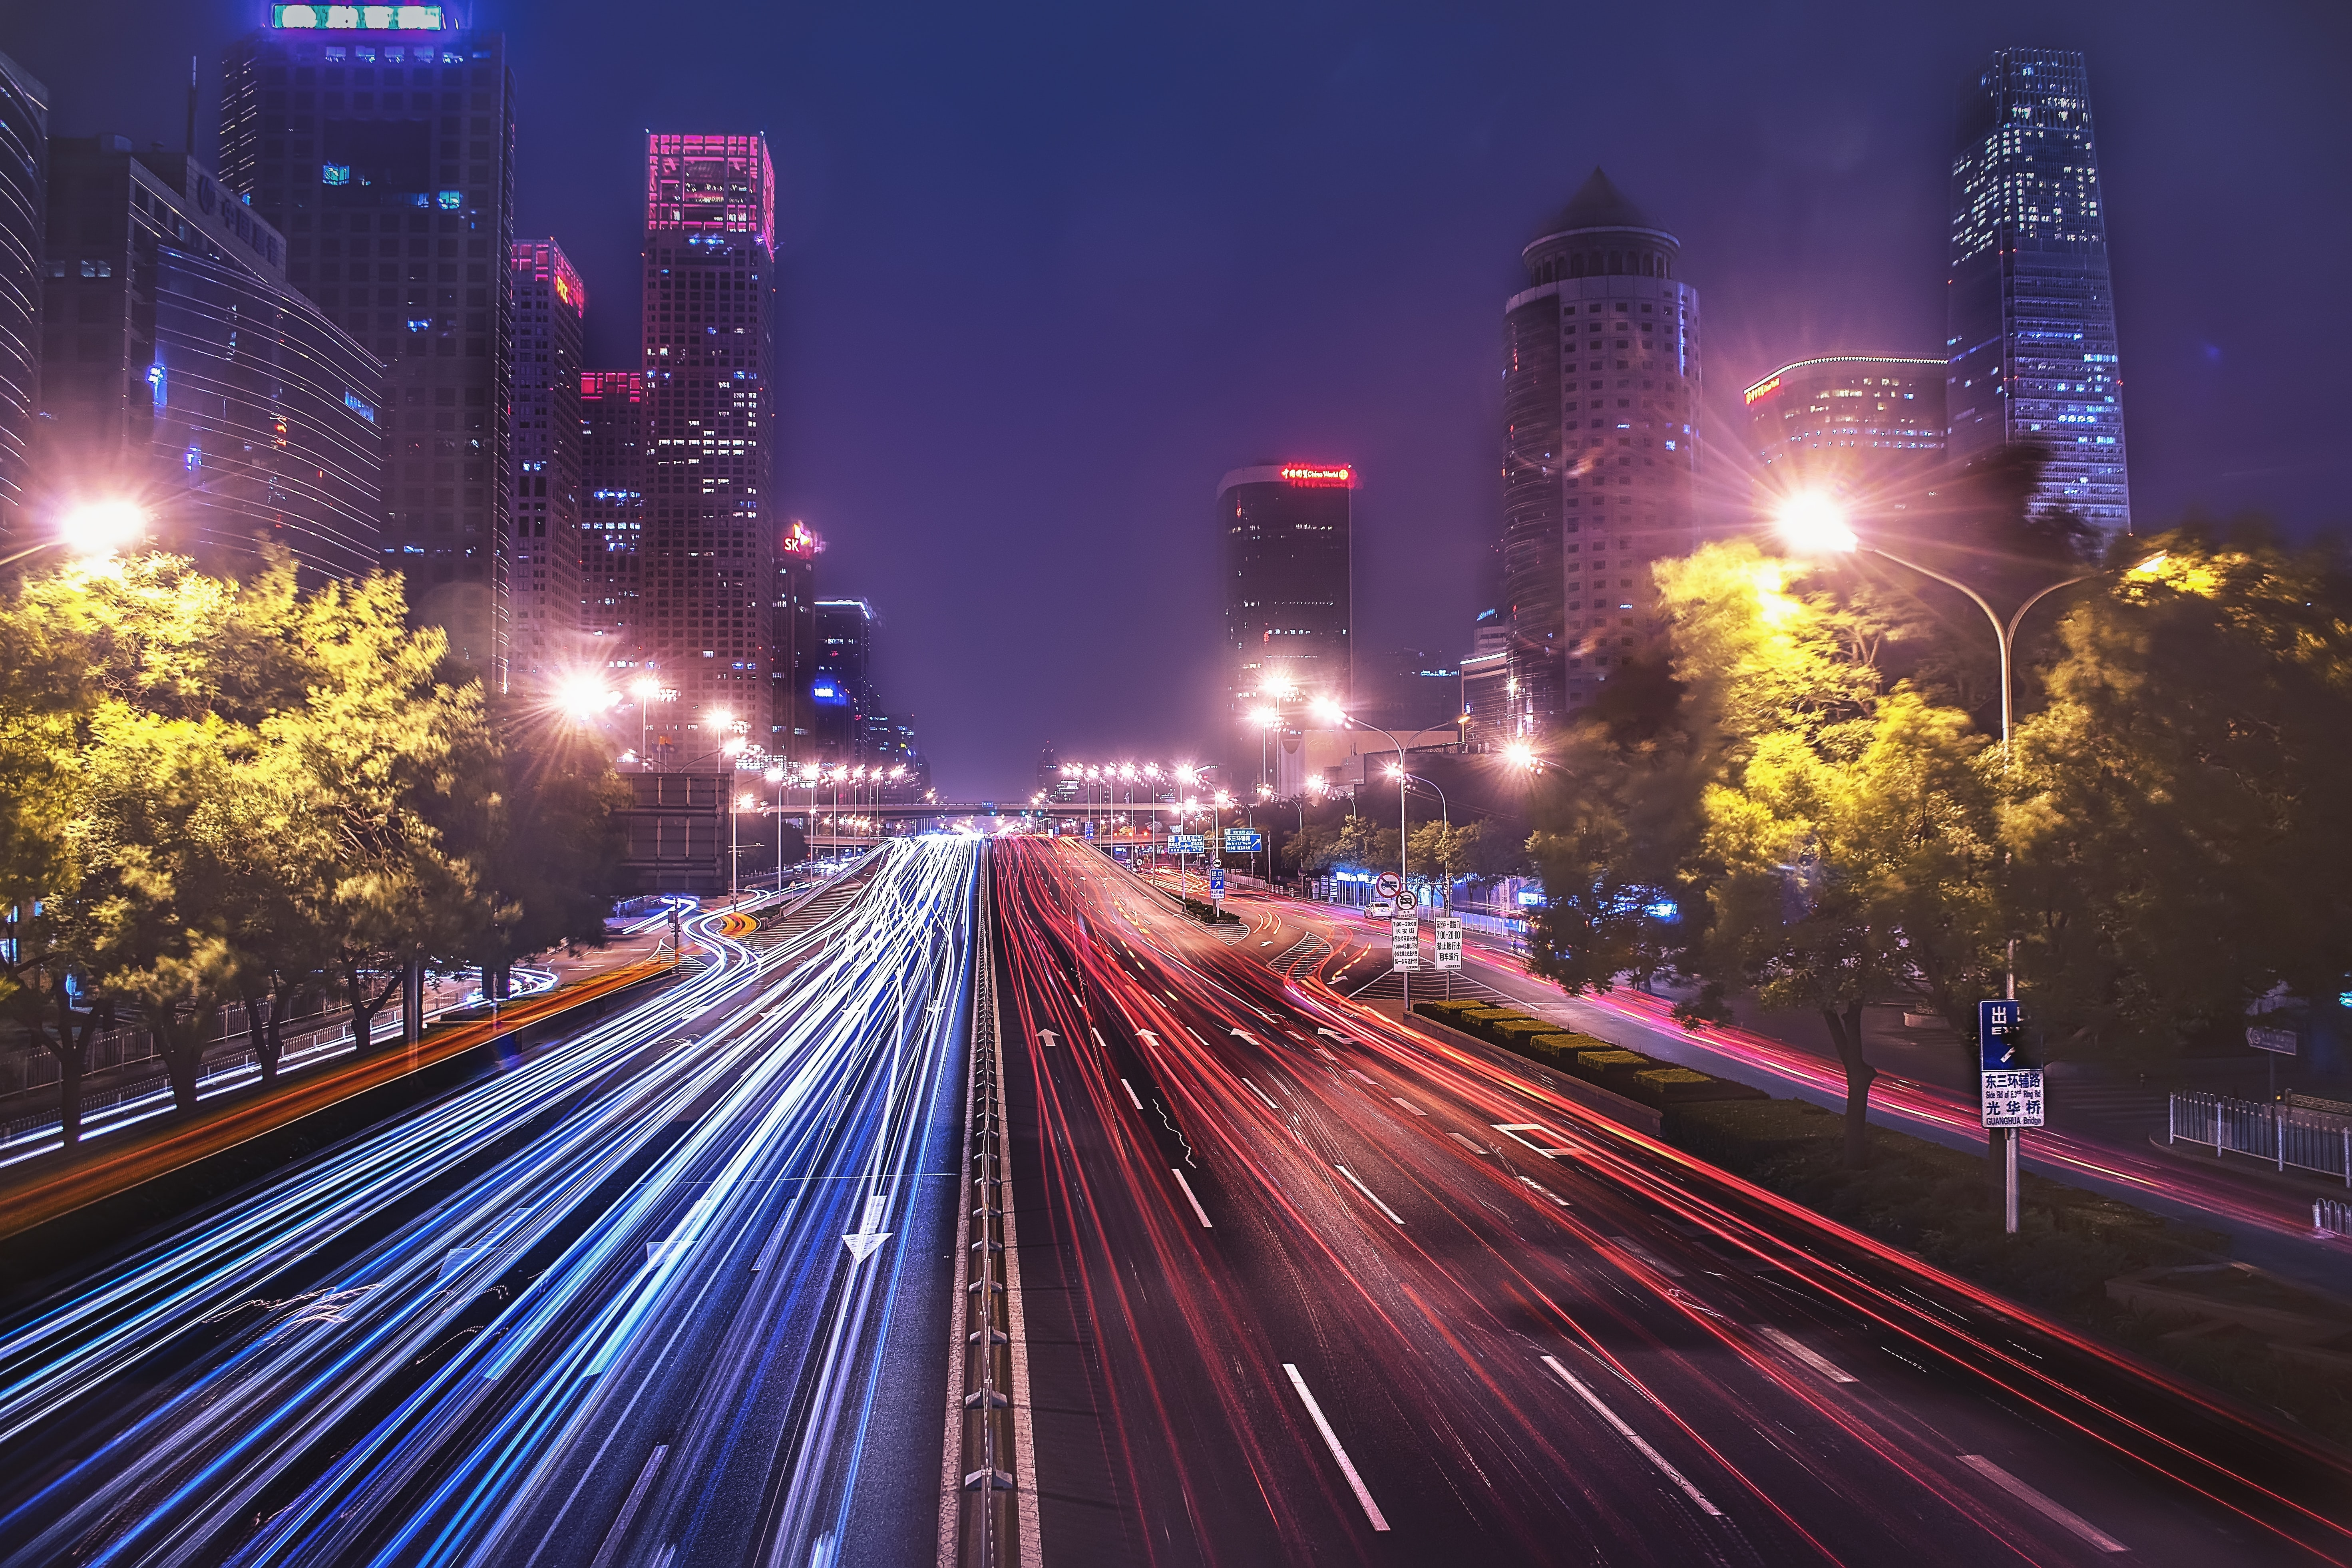 time-lapse photography of cars passing on road between buildings